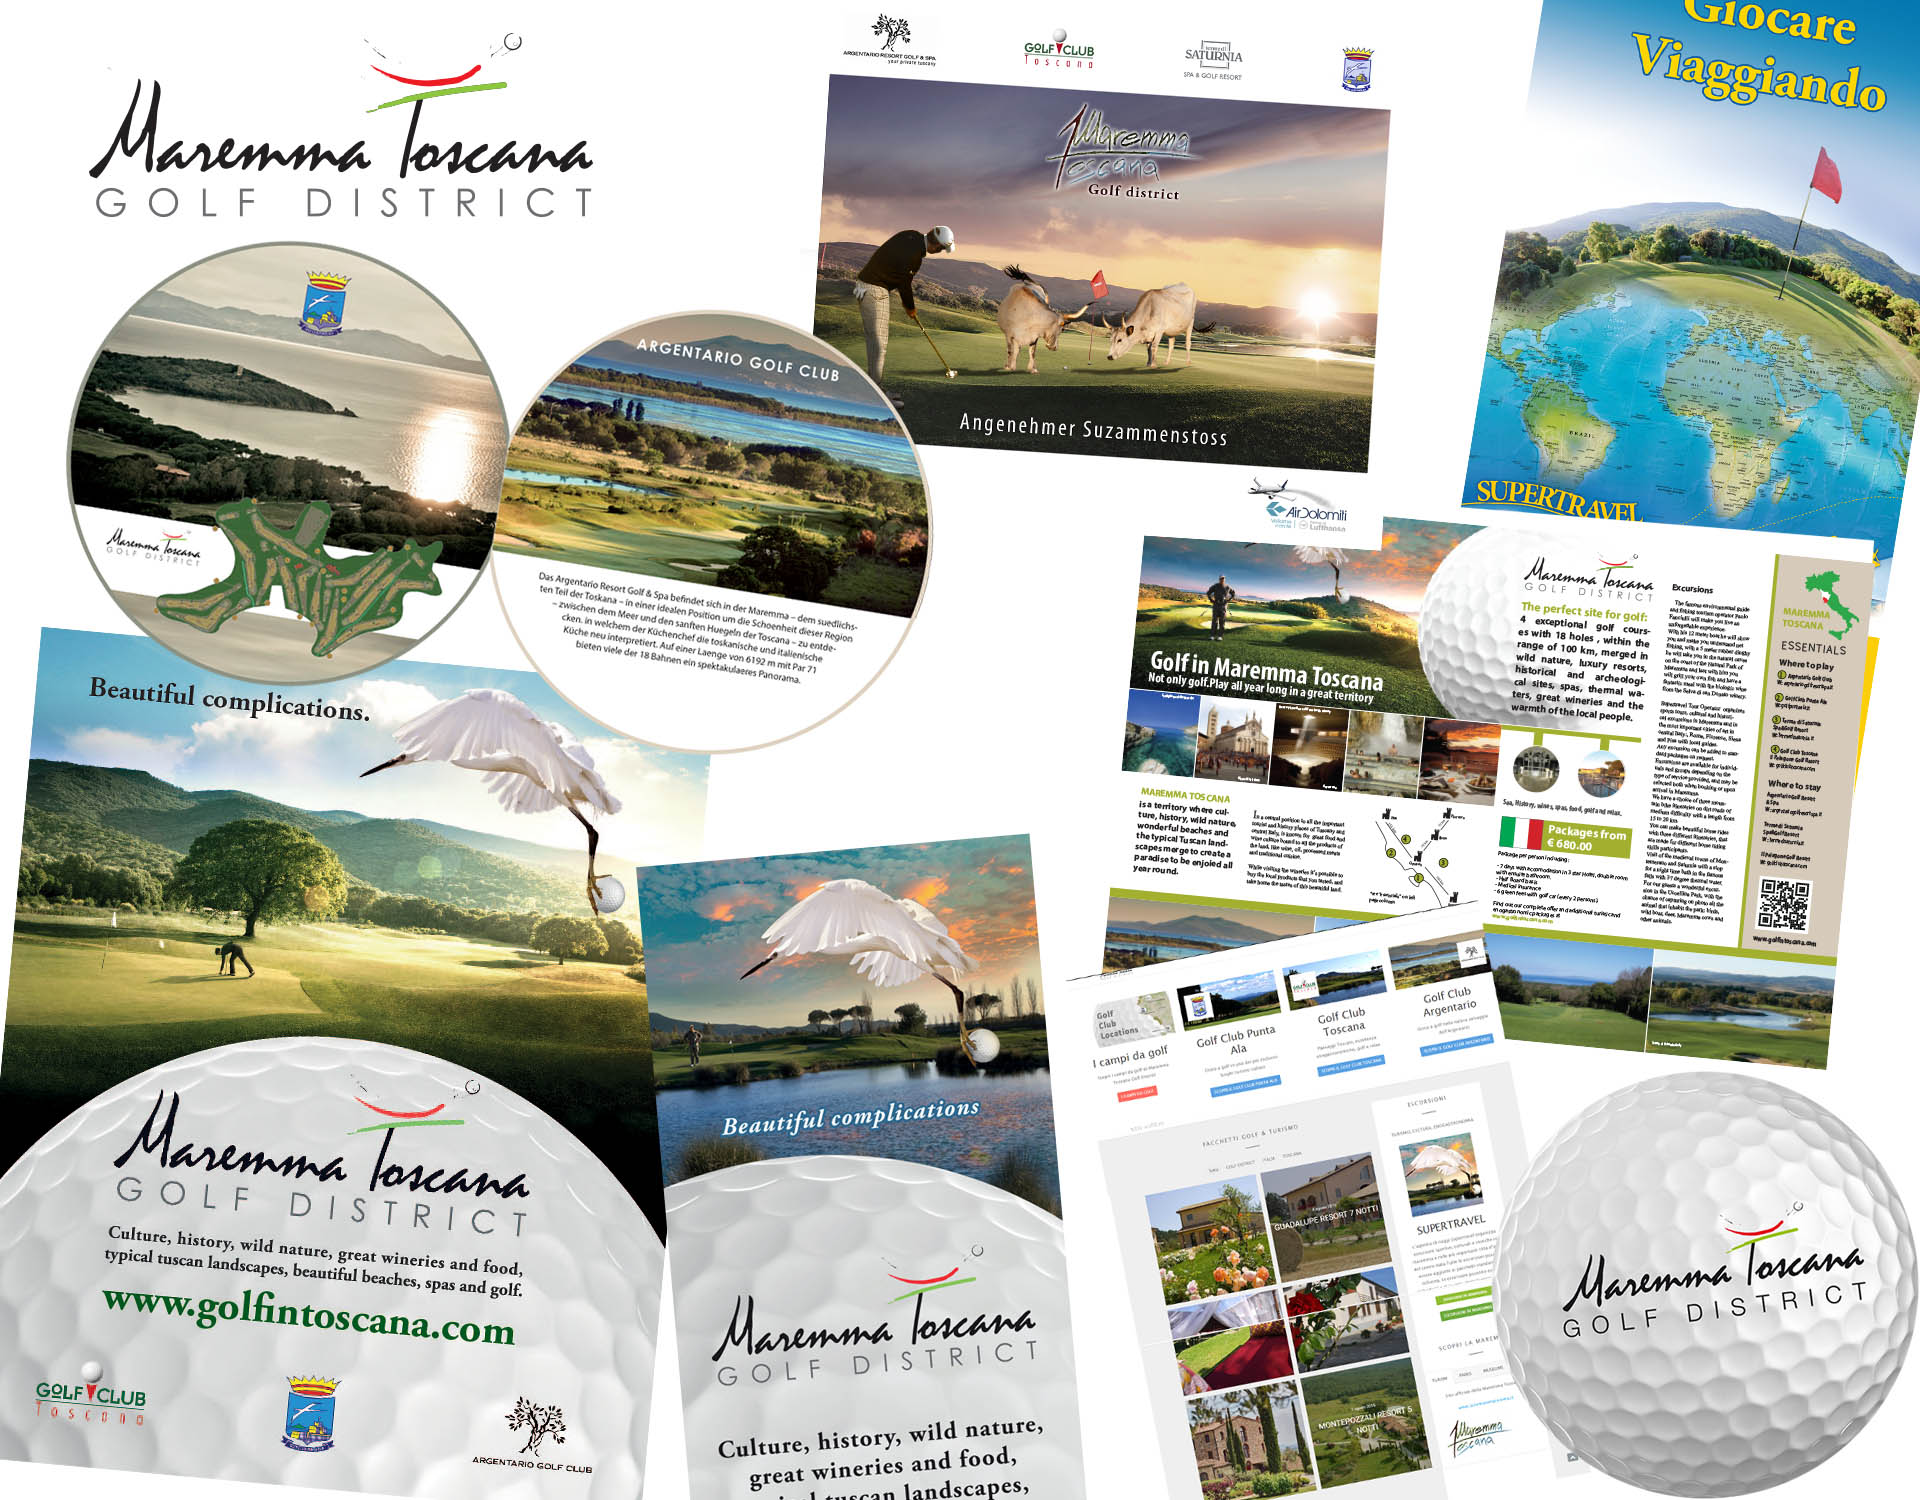 aironic_ugo-capparelli_comunicazione_maremmatoscana_golf_district